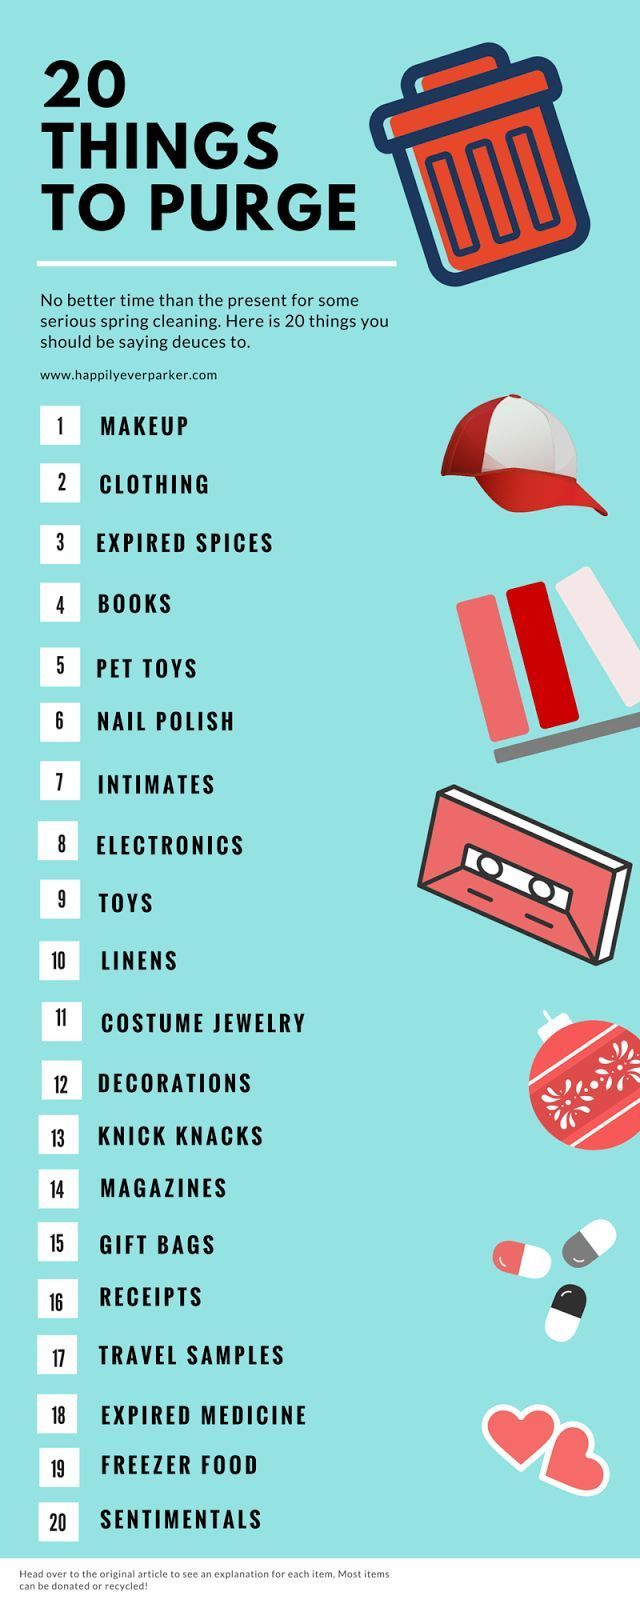 Happily Ever Parker: 20 Things to Purge, organize, organization, cleaning tips, spring cleaning